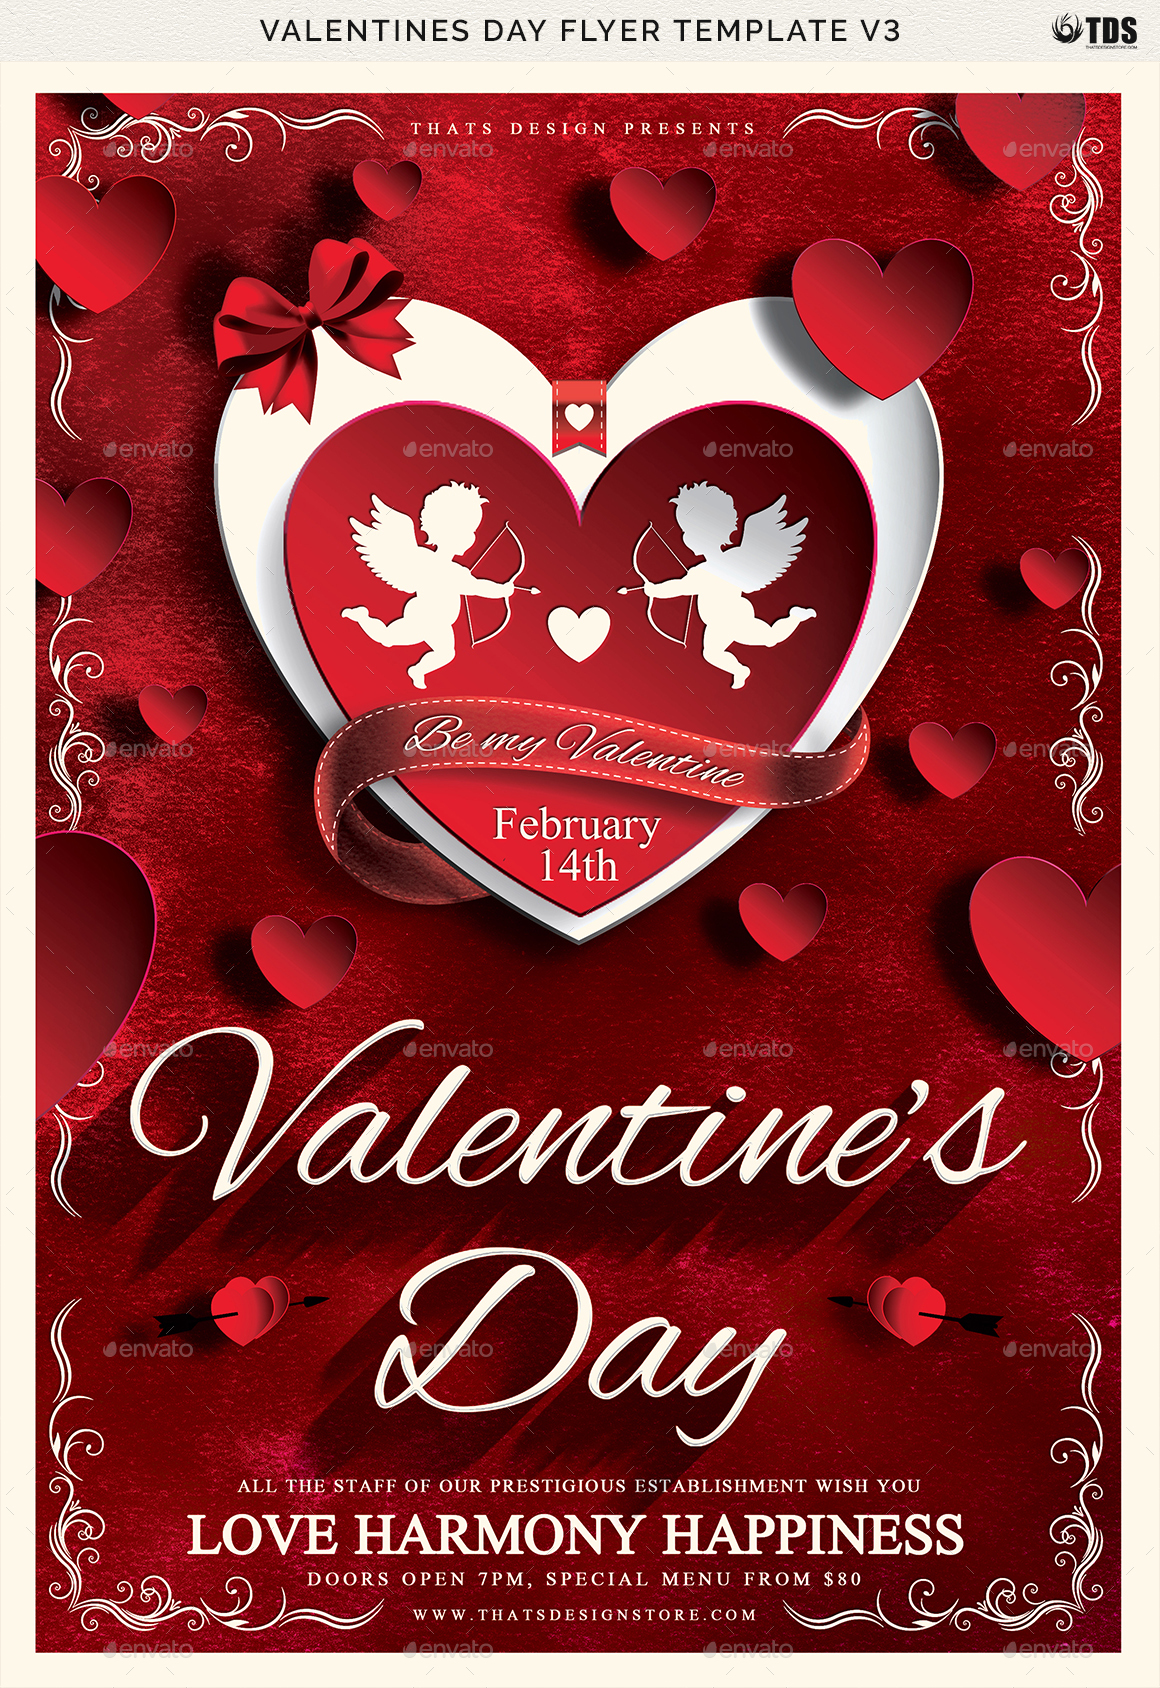 Valentines Day Flyer Template V3 by lou606 | GraphicRiver